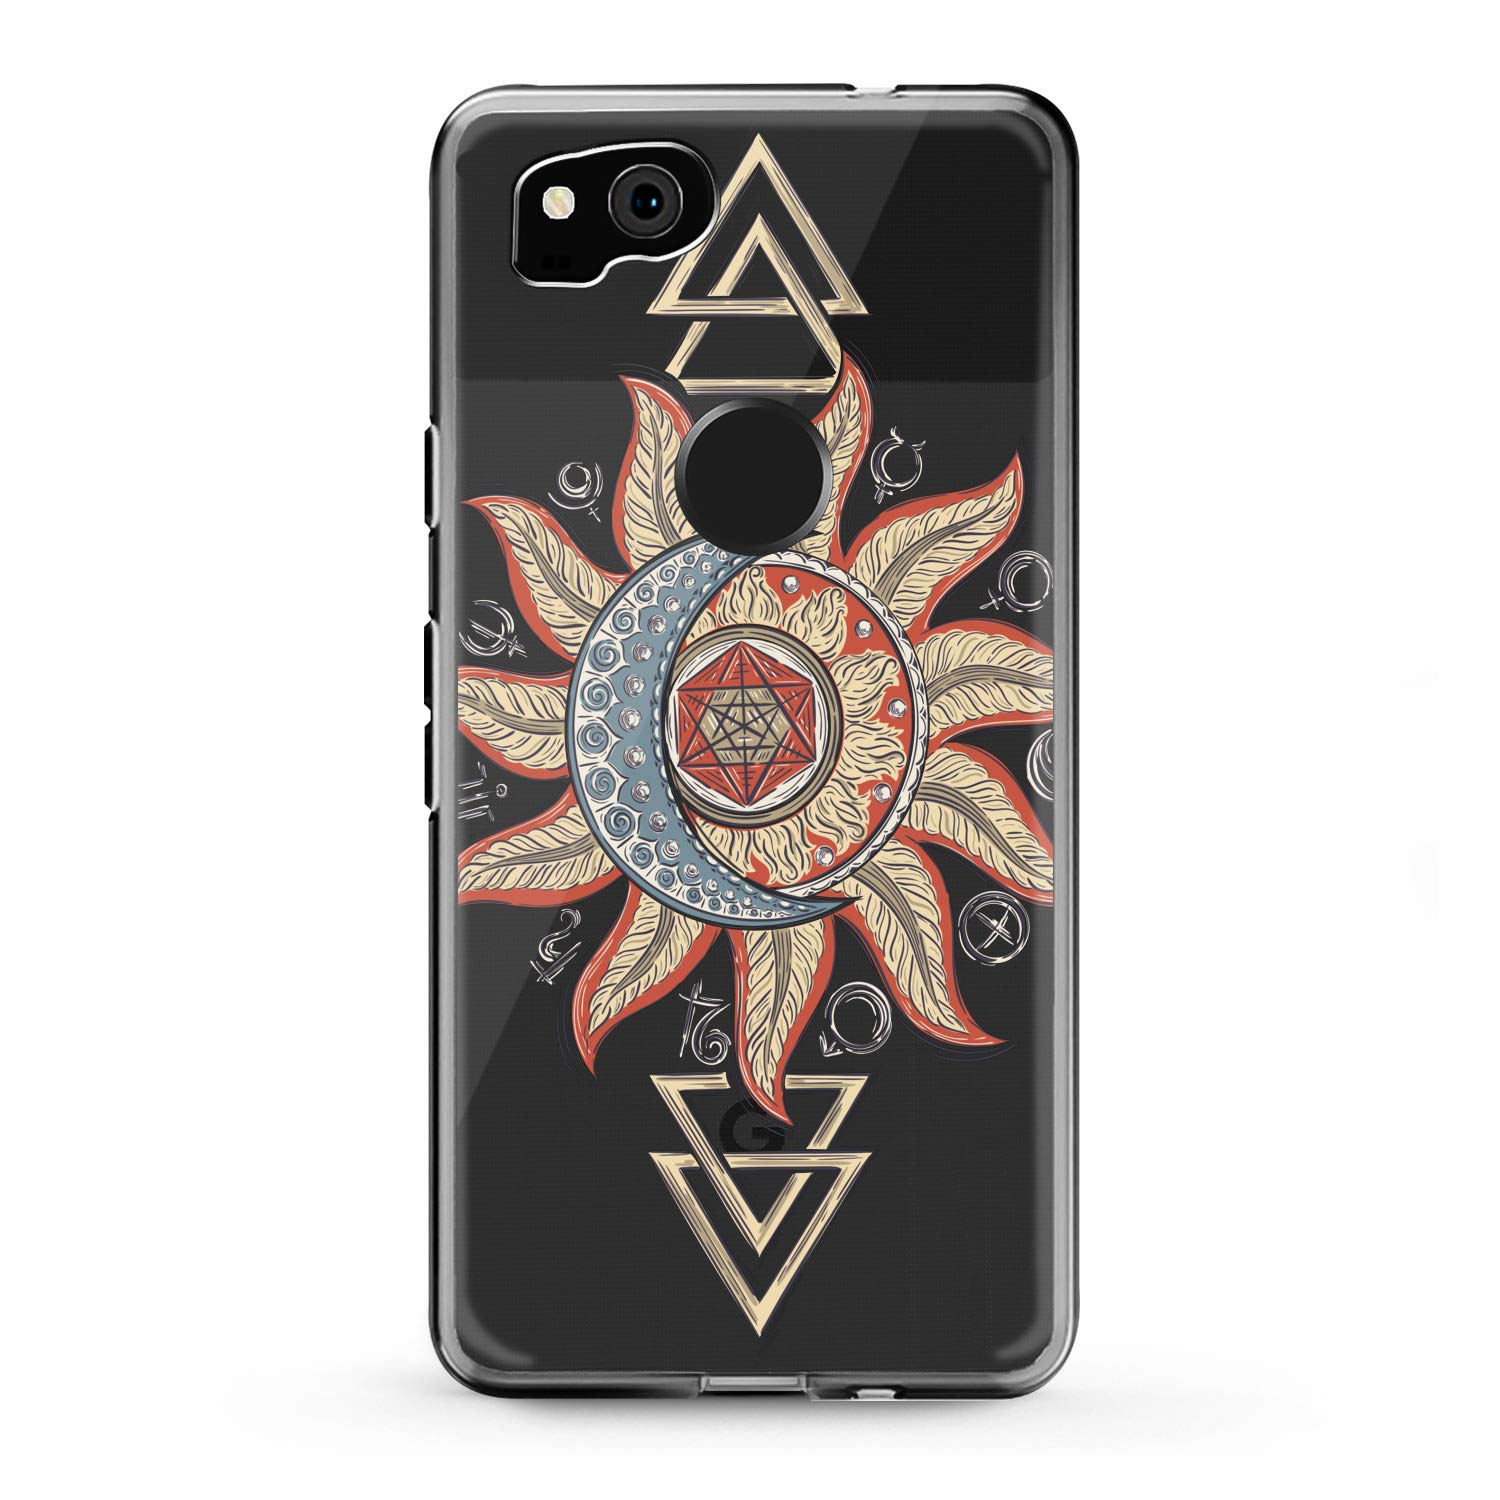 Lex Altern TPU Case for Google Pixel 3a 3 XL 2 inch 5 5.5 6 2019 Mandala Clear Colorful Phone Bohemian Cover Soft Boho Silicone Flower Print Tribal Protective Totem Transparent Girly Women Gift